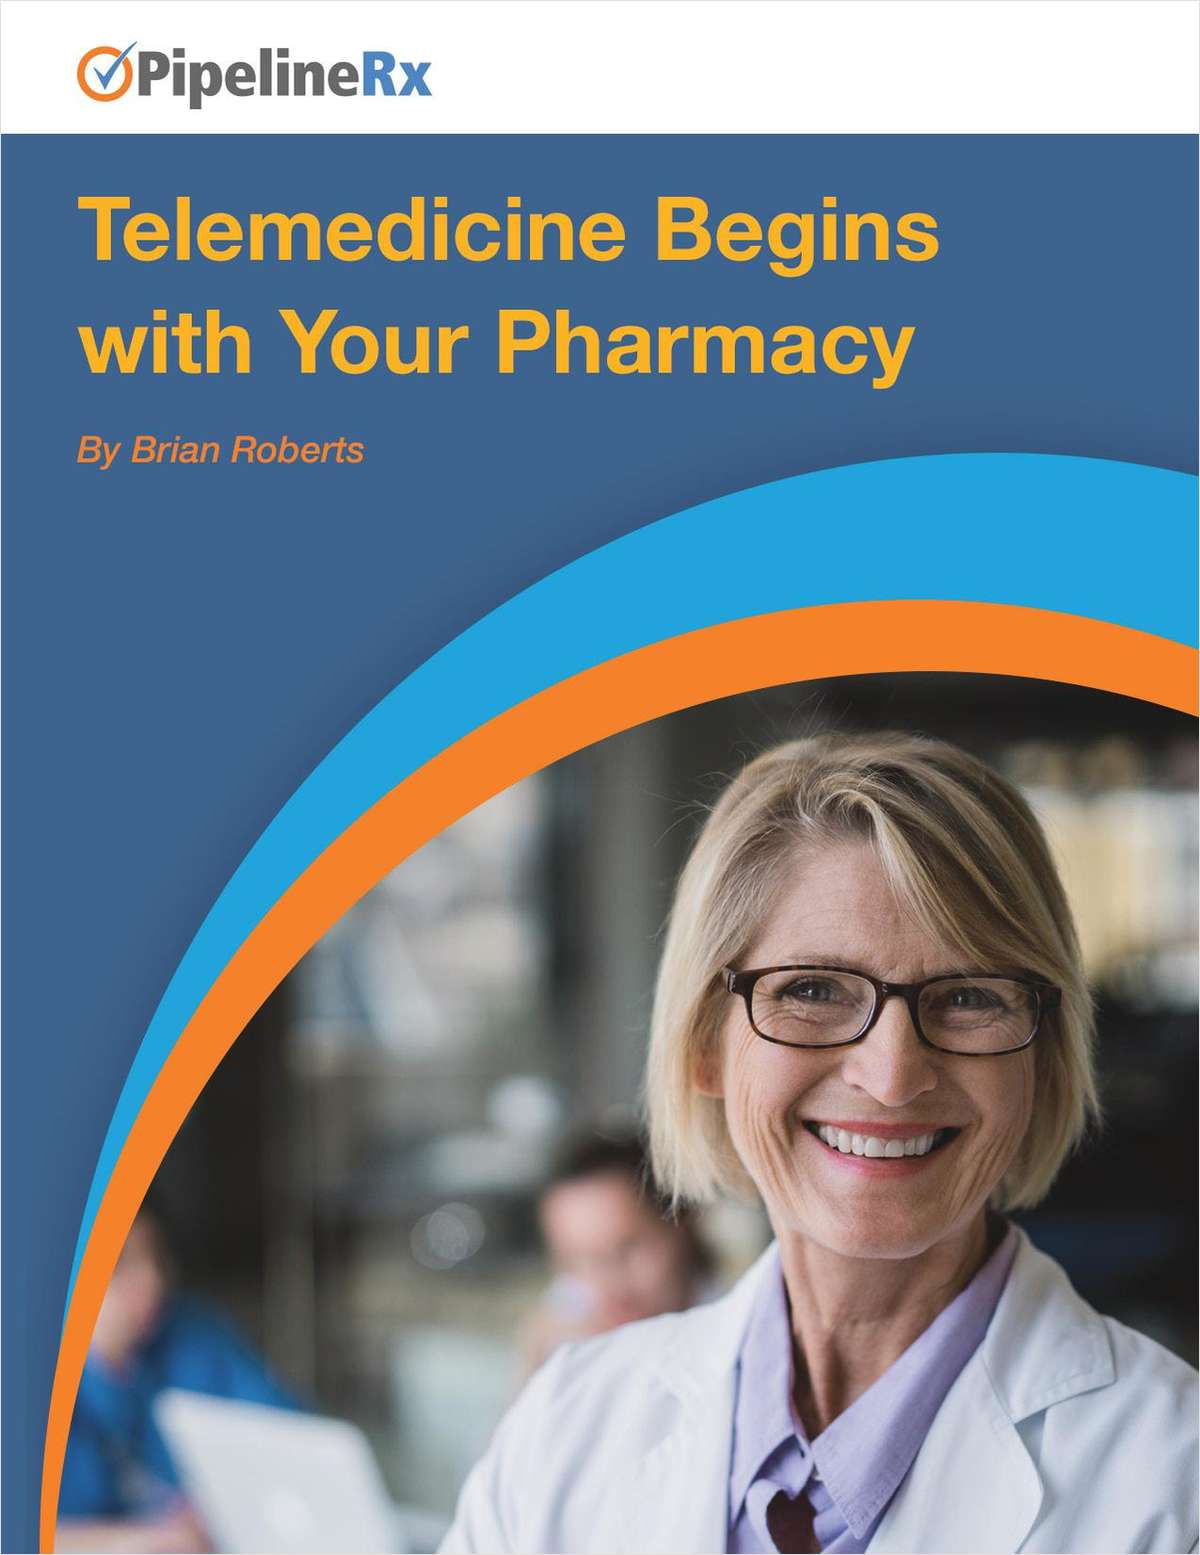 Telemedicine Begins with Your Pharmacy